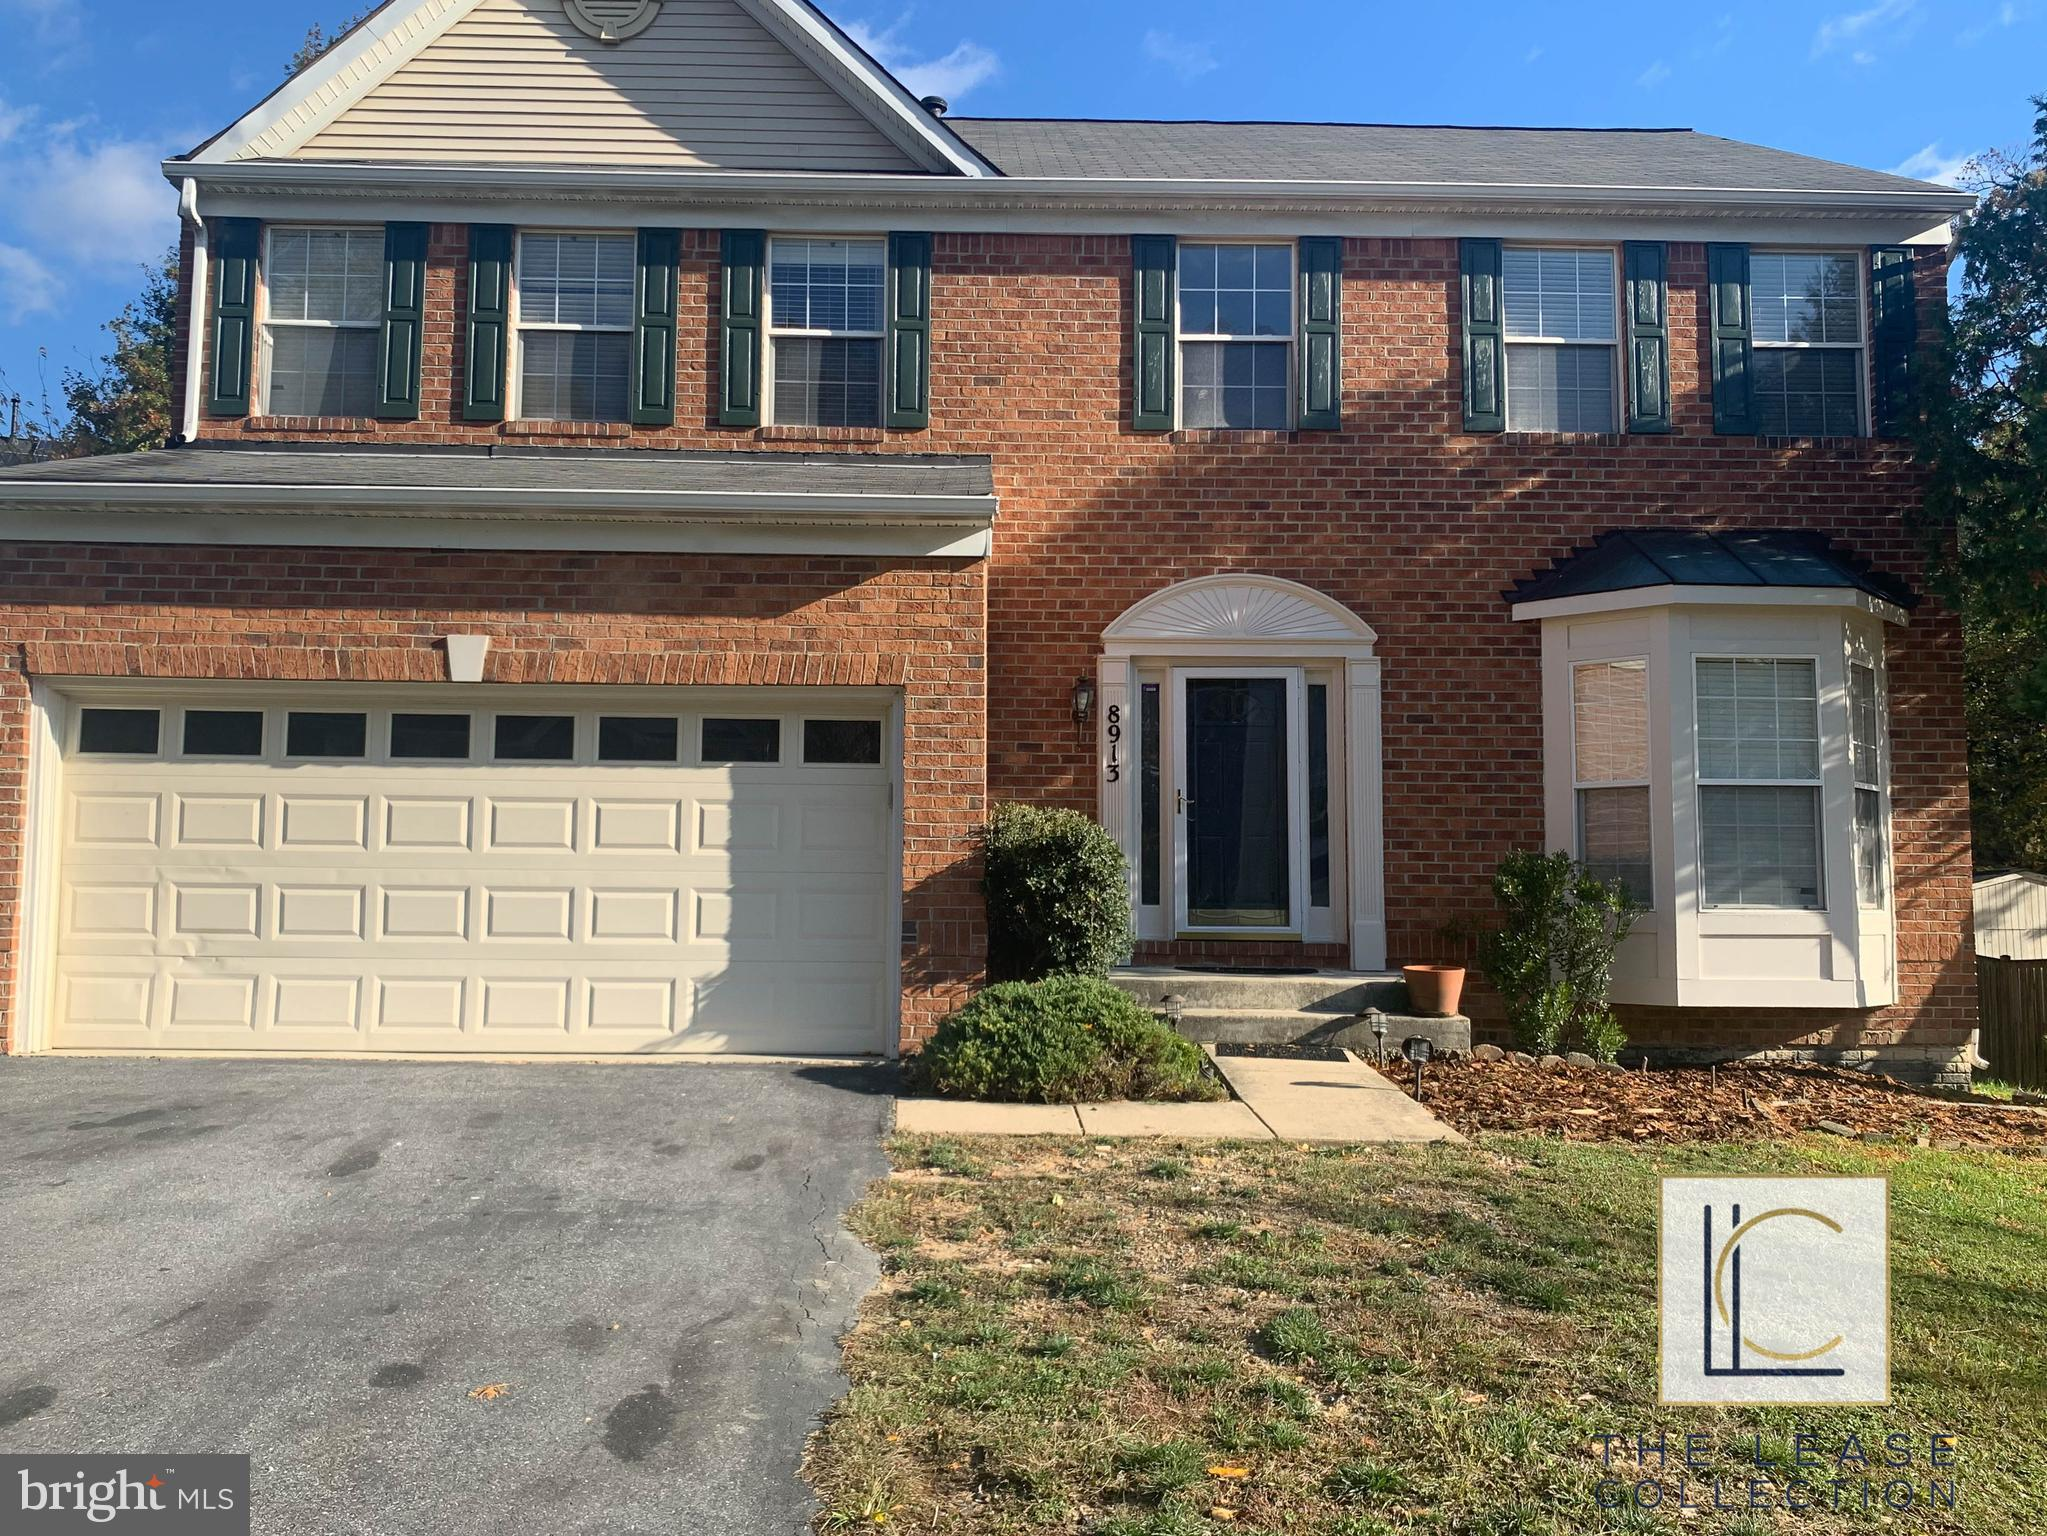 8913 TONBRIDGE TERRACE, HYATTSVILLE, MD 20783